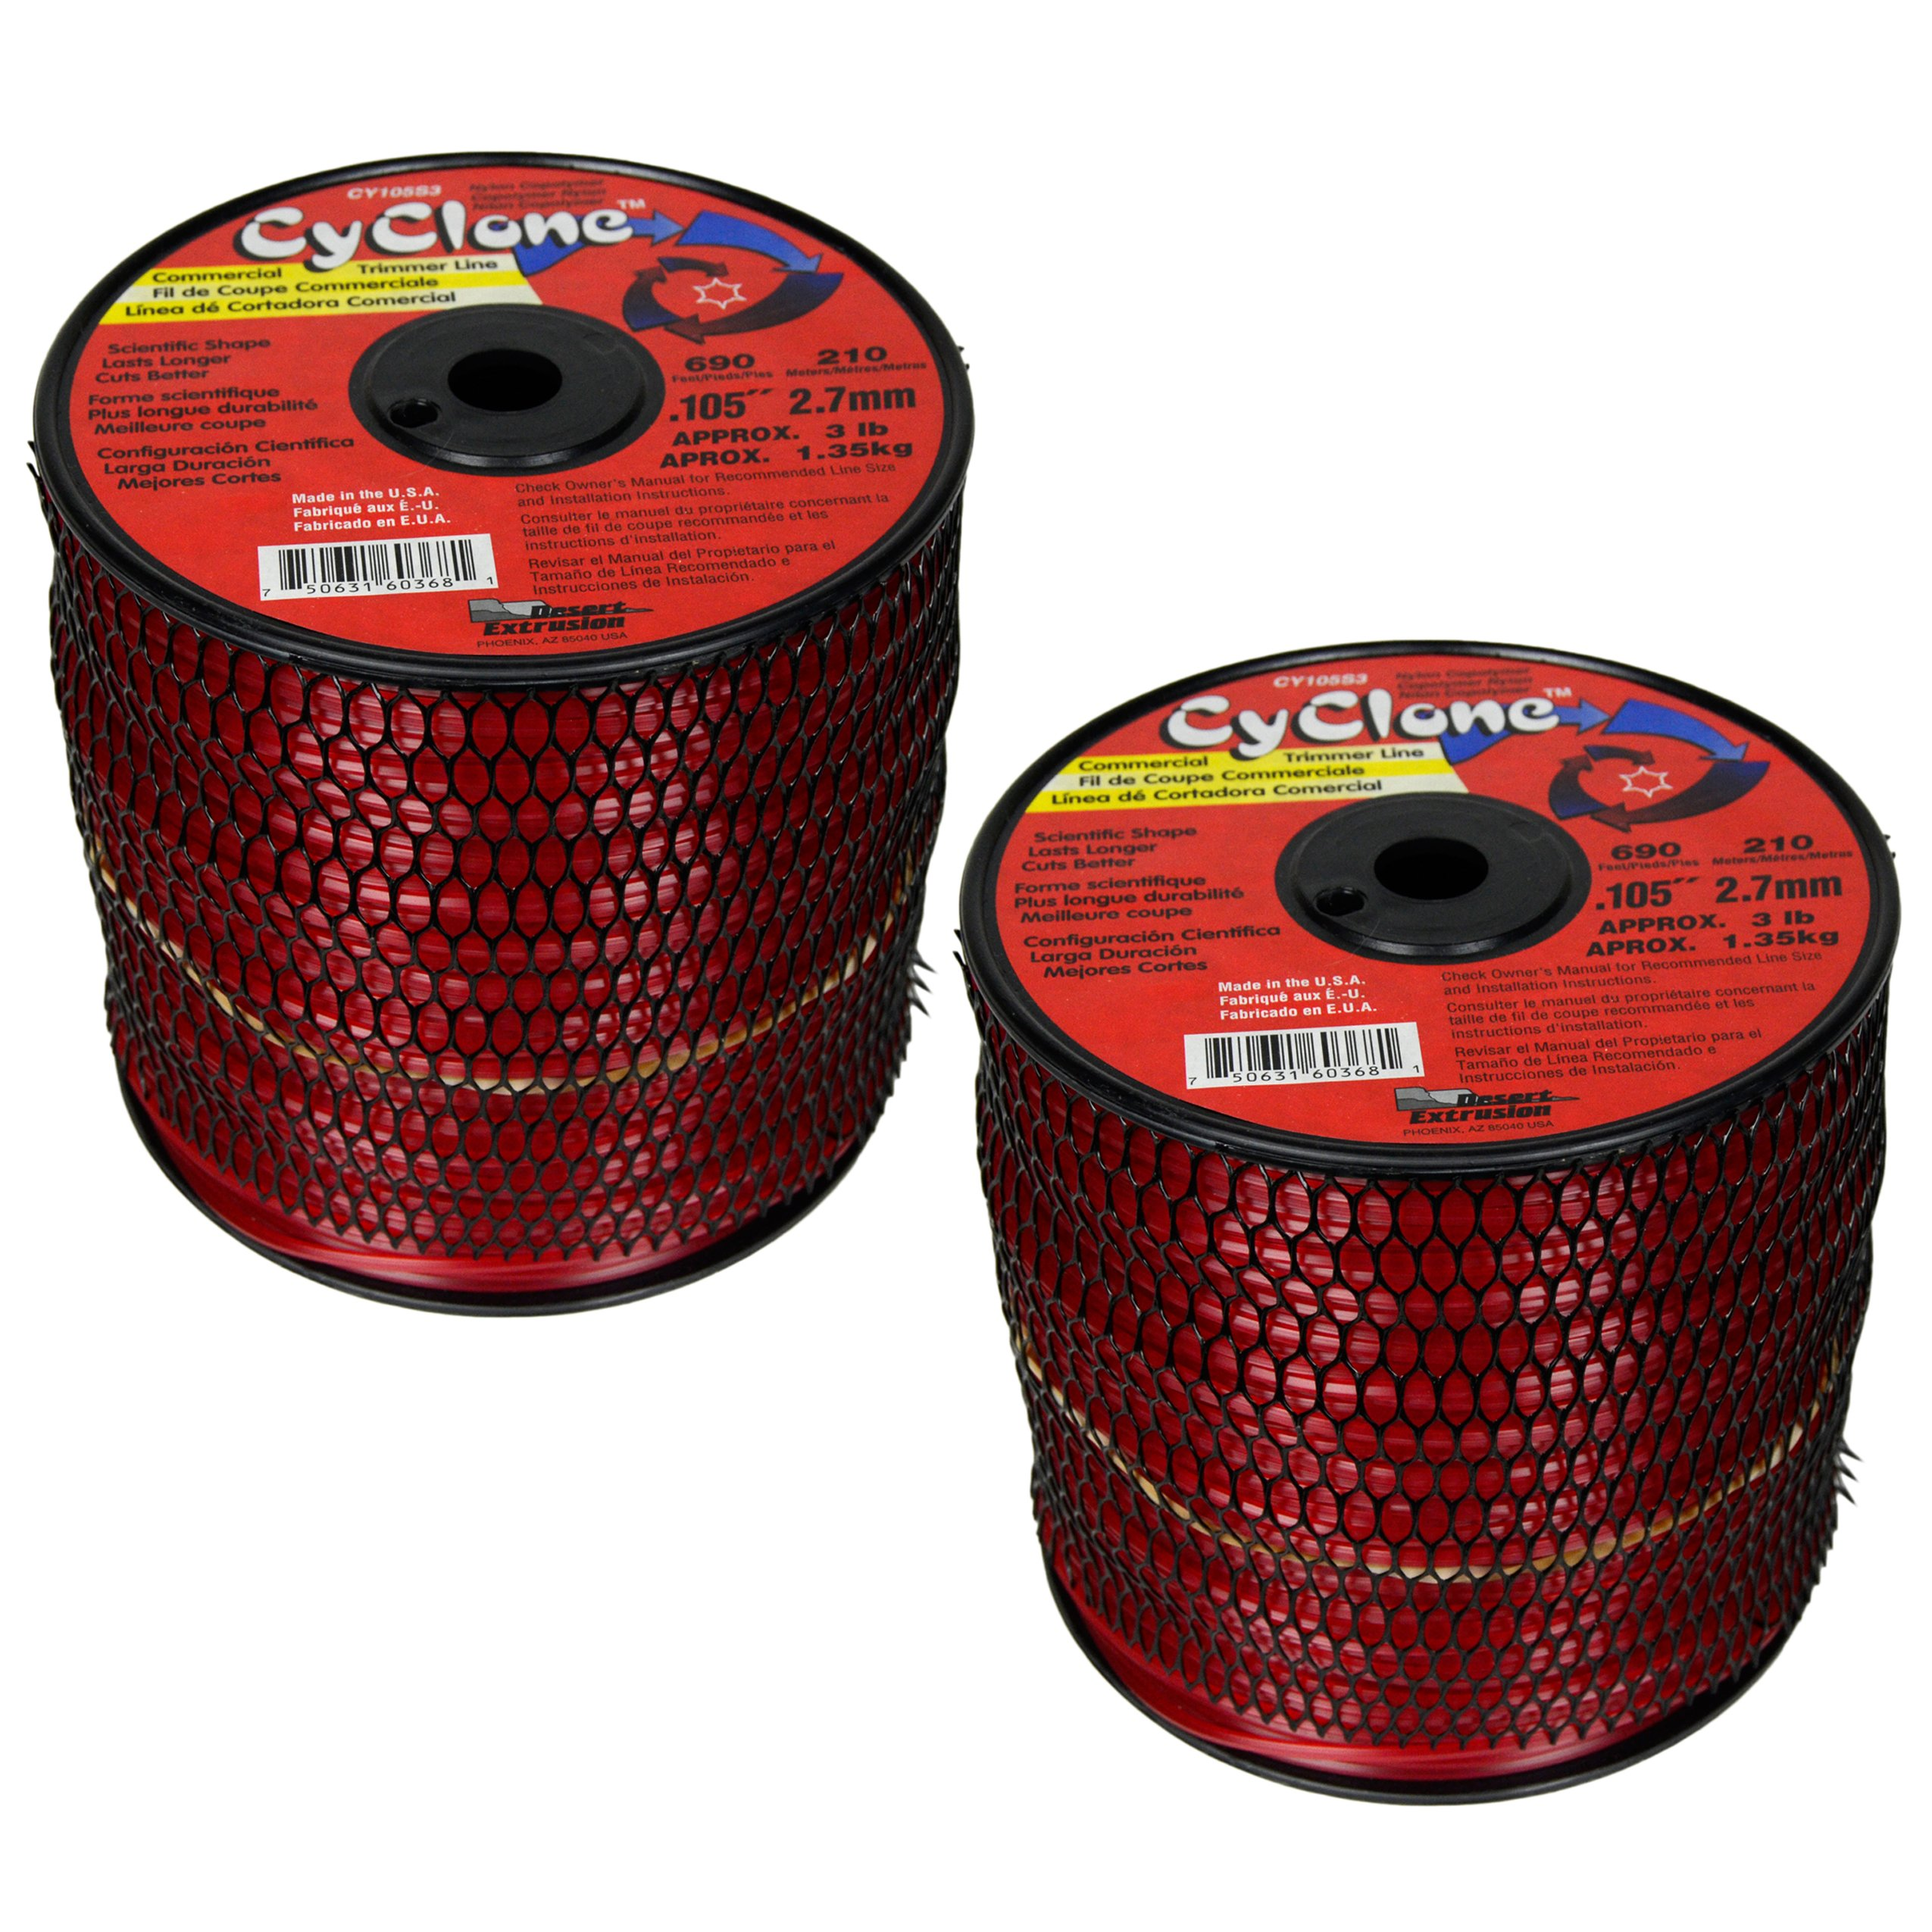 Desert Extrusion Cyclone CY105S3 .105'' x690' Commercial Line Red [2/Case] (2-Pack) by Cyclone